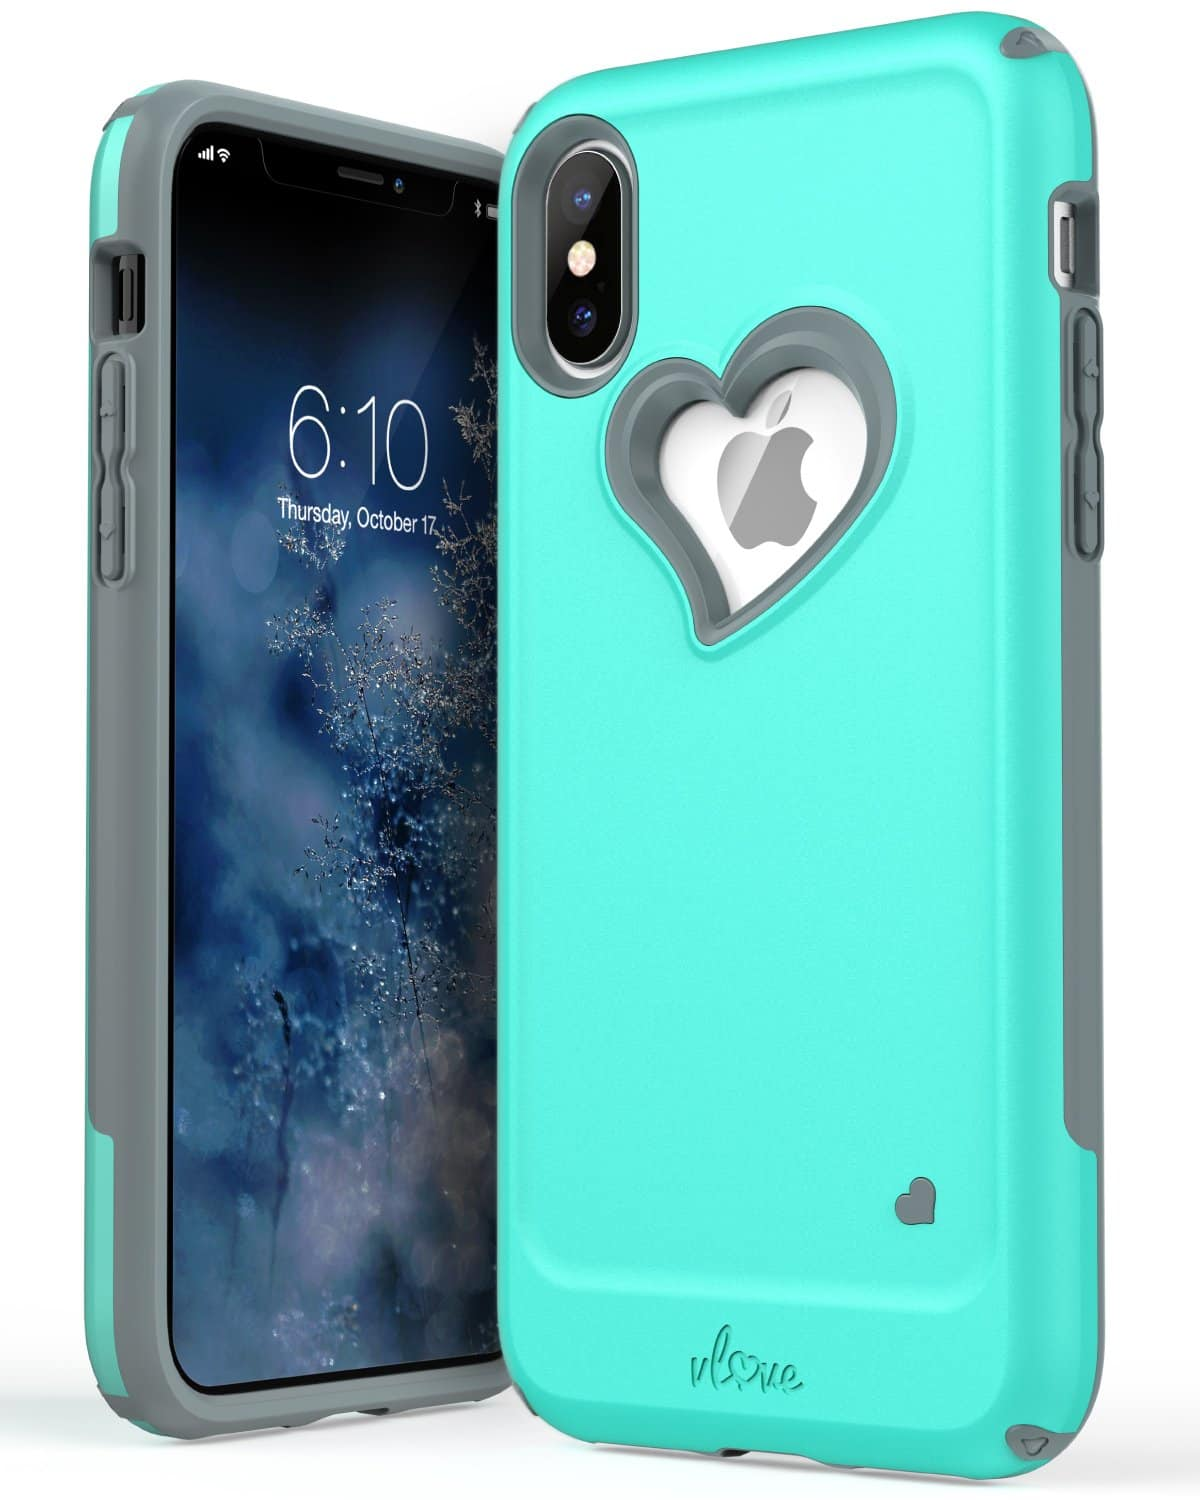 Smartphone Cases Vena Smartphone Cases For Iphone Xs X Pixel 2 Or Galaxy S9